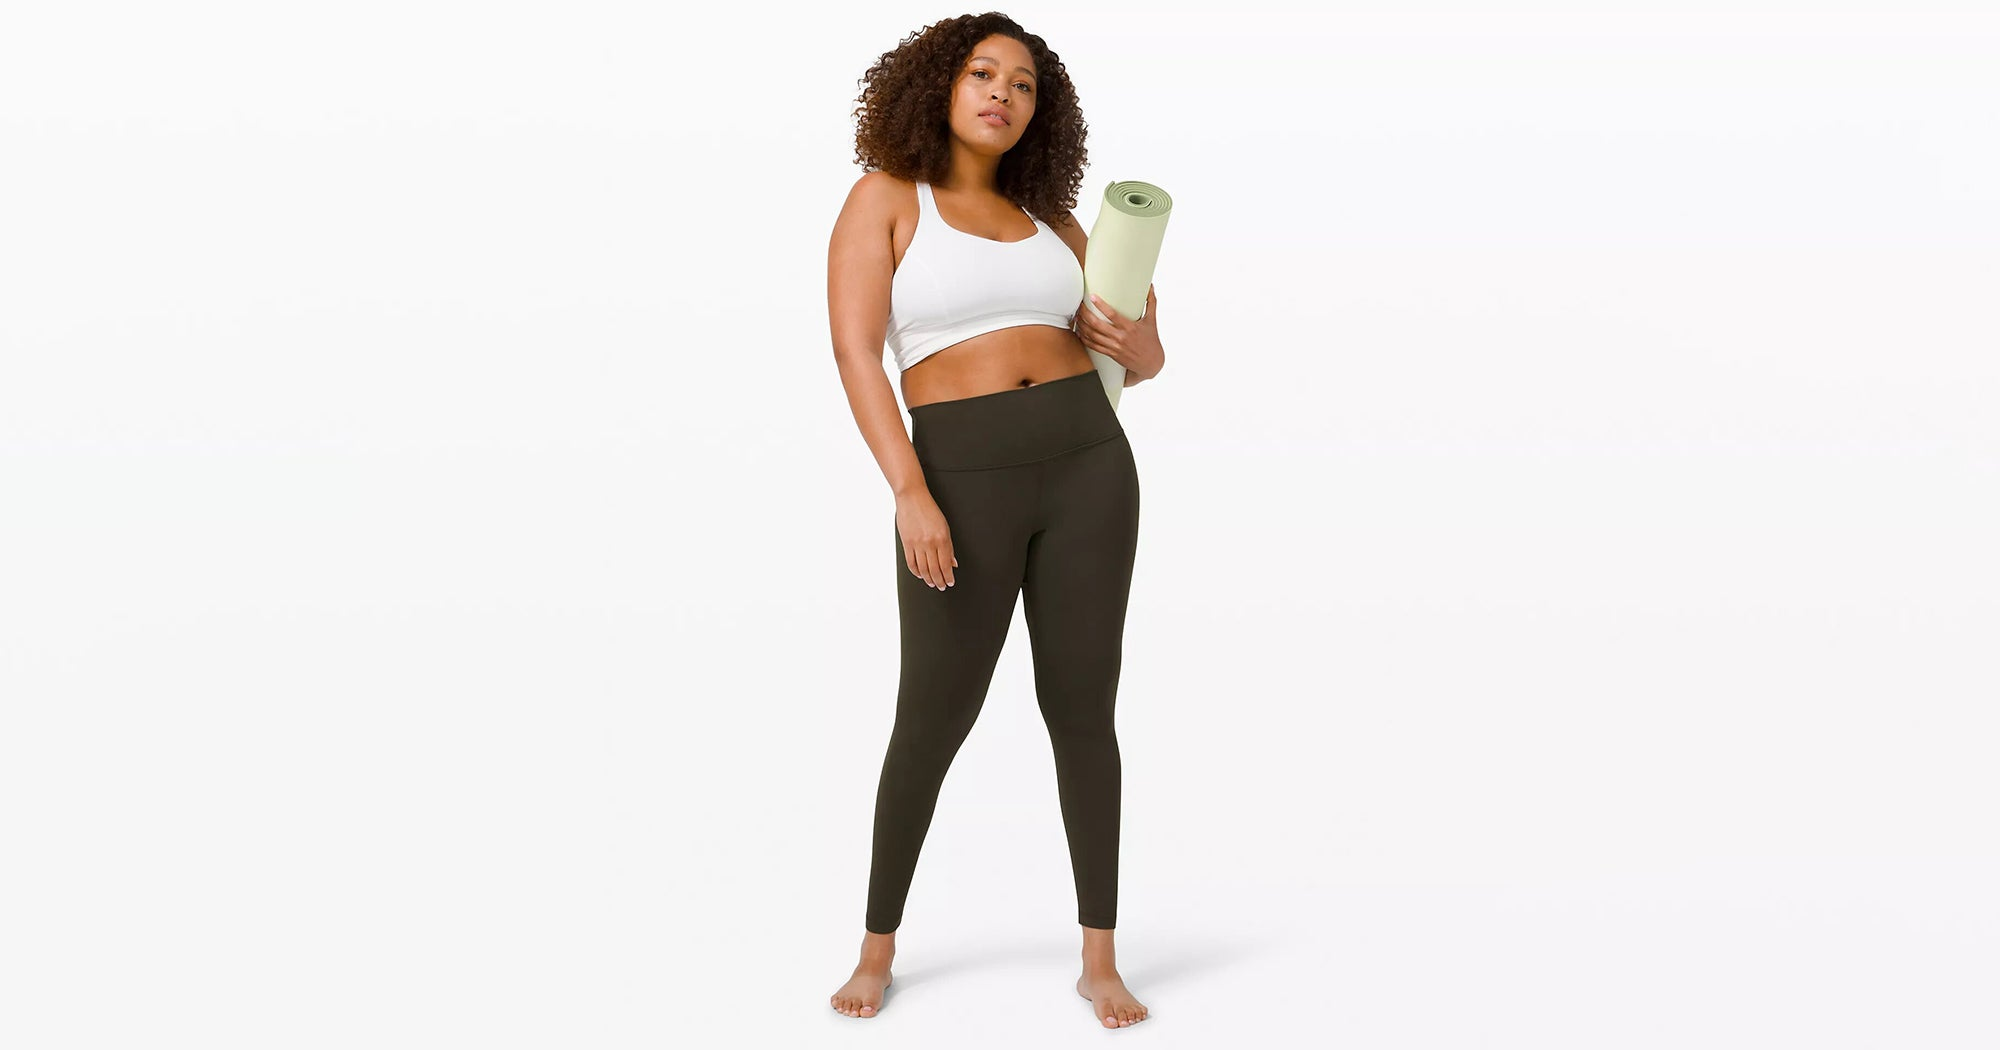 www.refinery29.com: Lululemon's Sizing Is More Inclusive Than Ever Before